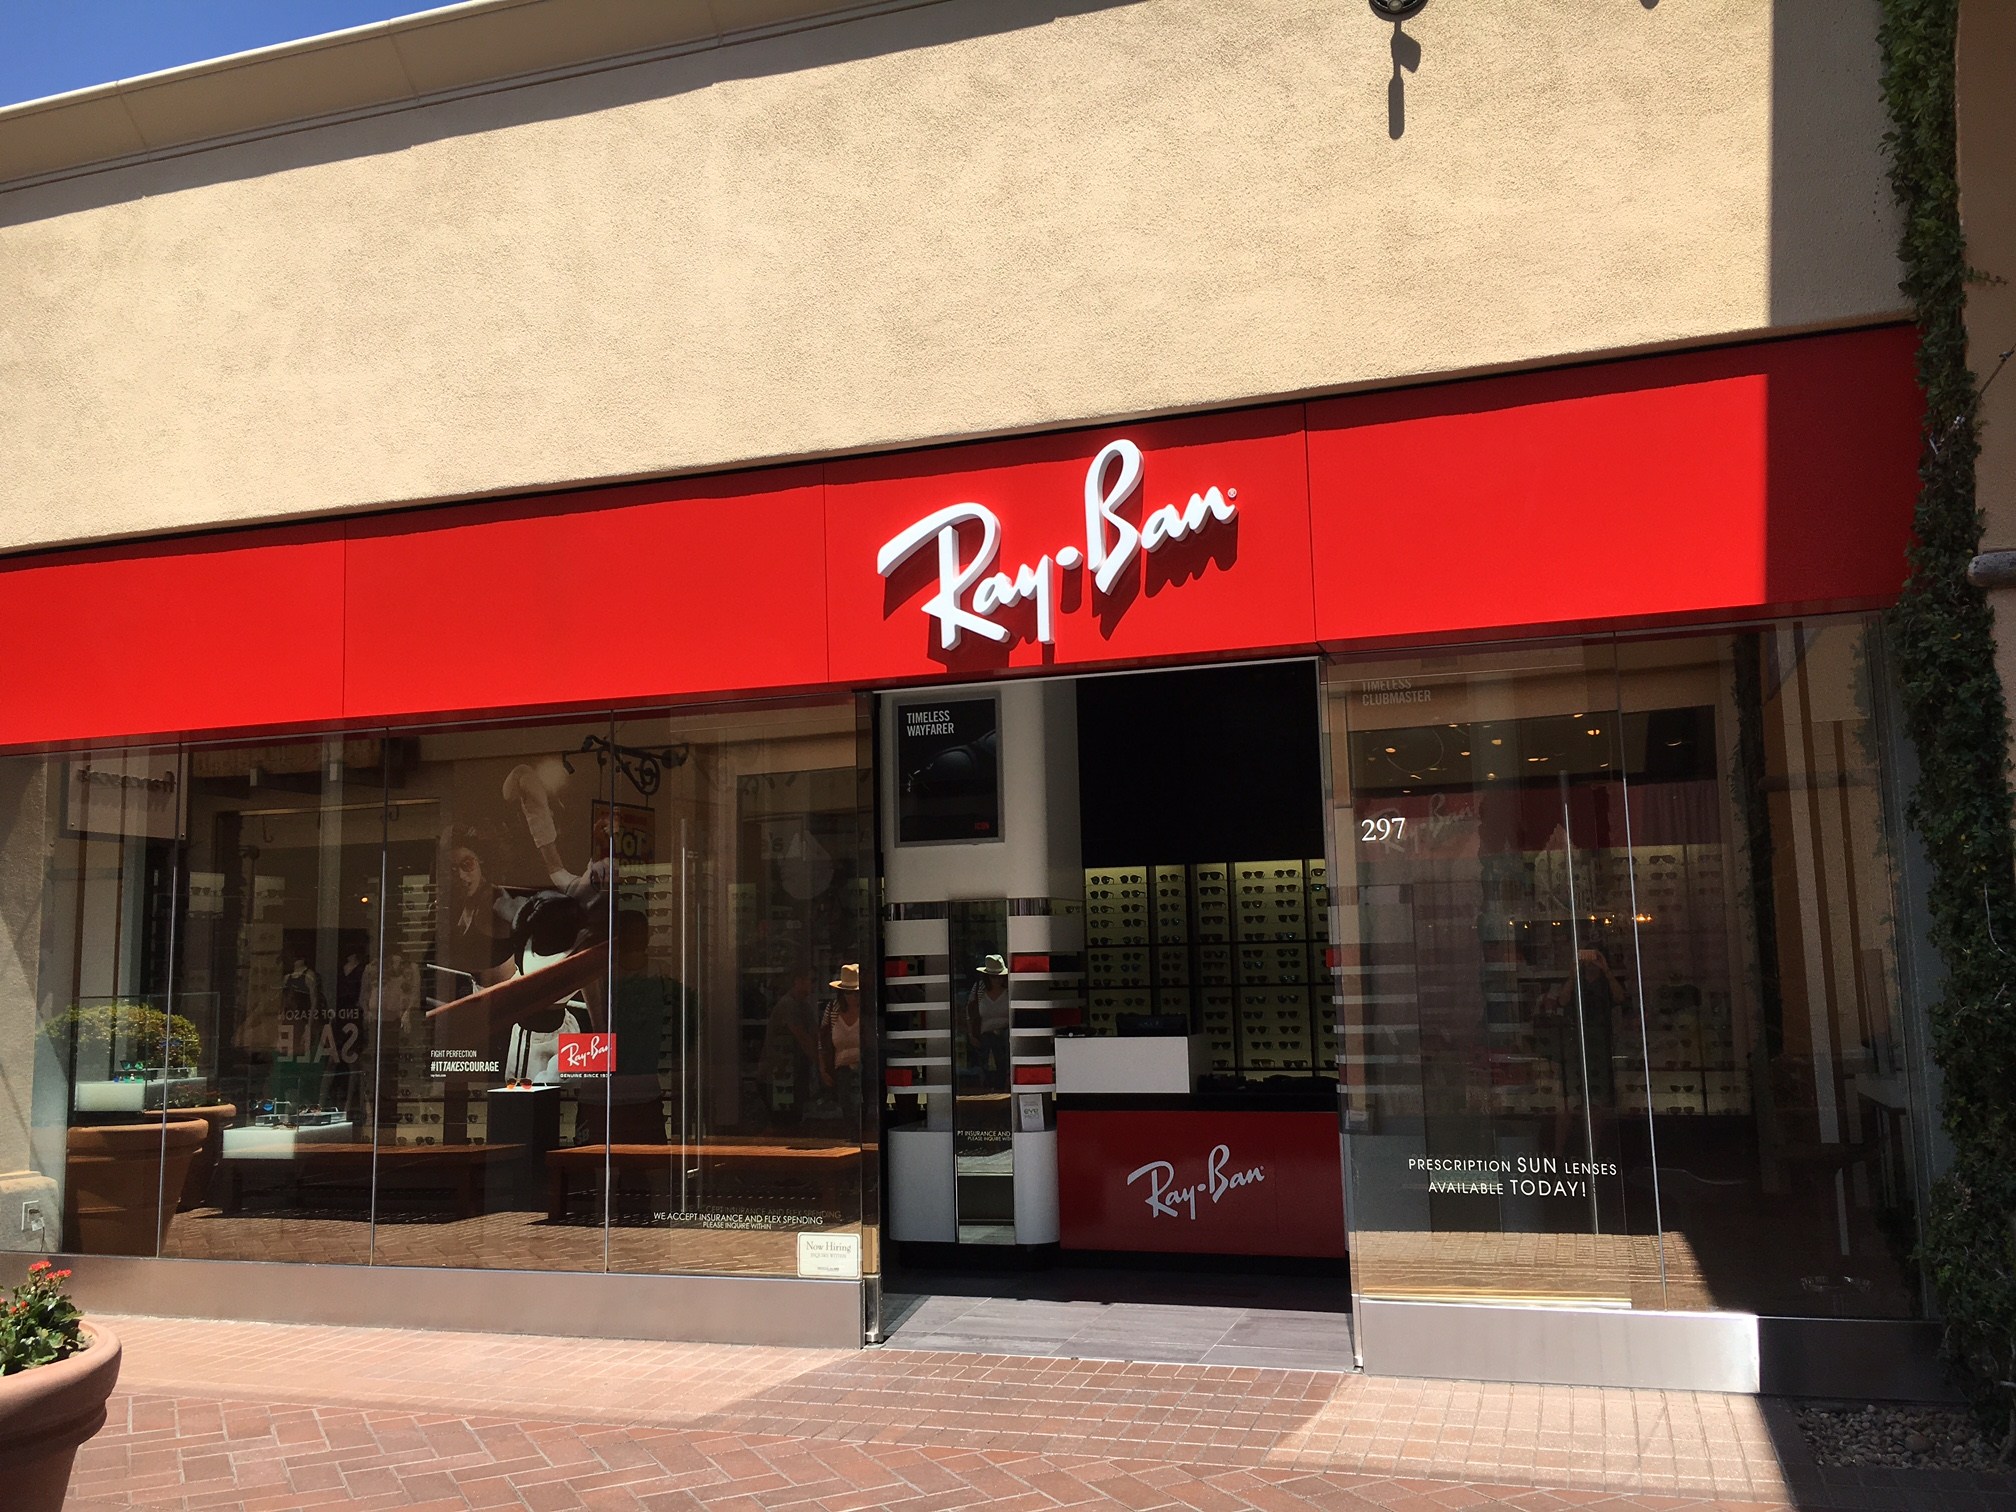 Ray Ban Sunglasses Outlet Store,We Provide Various Types Of Ray Ban Aviator Sunglasses for Men and Women, Save Up 80% Off and Free Shipping.